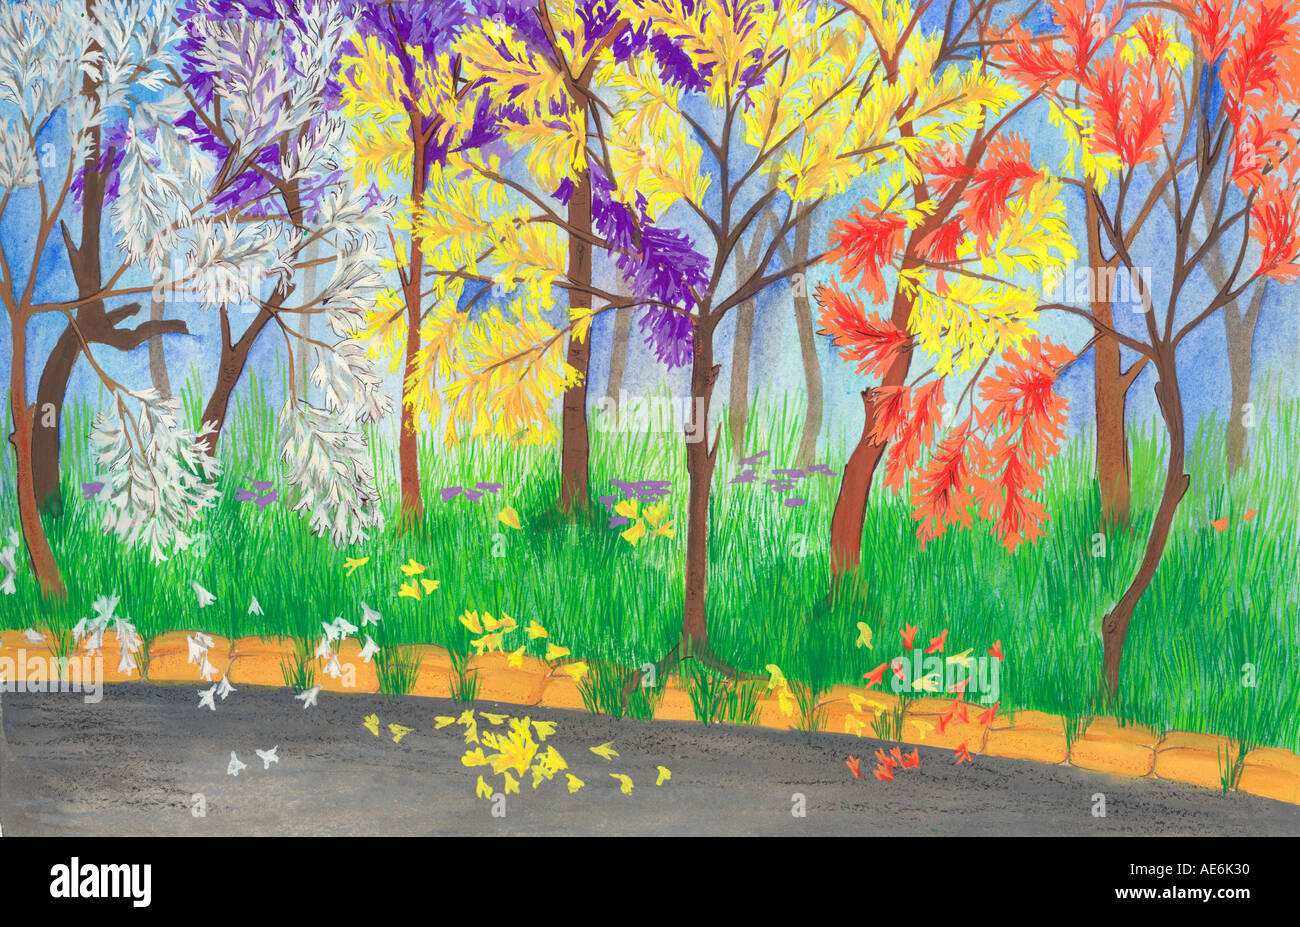 ARS71026 Painting illustration drawing color of garden with colorful ...